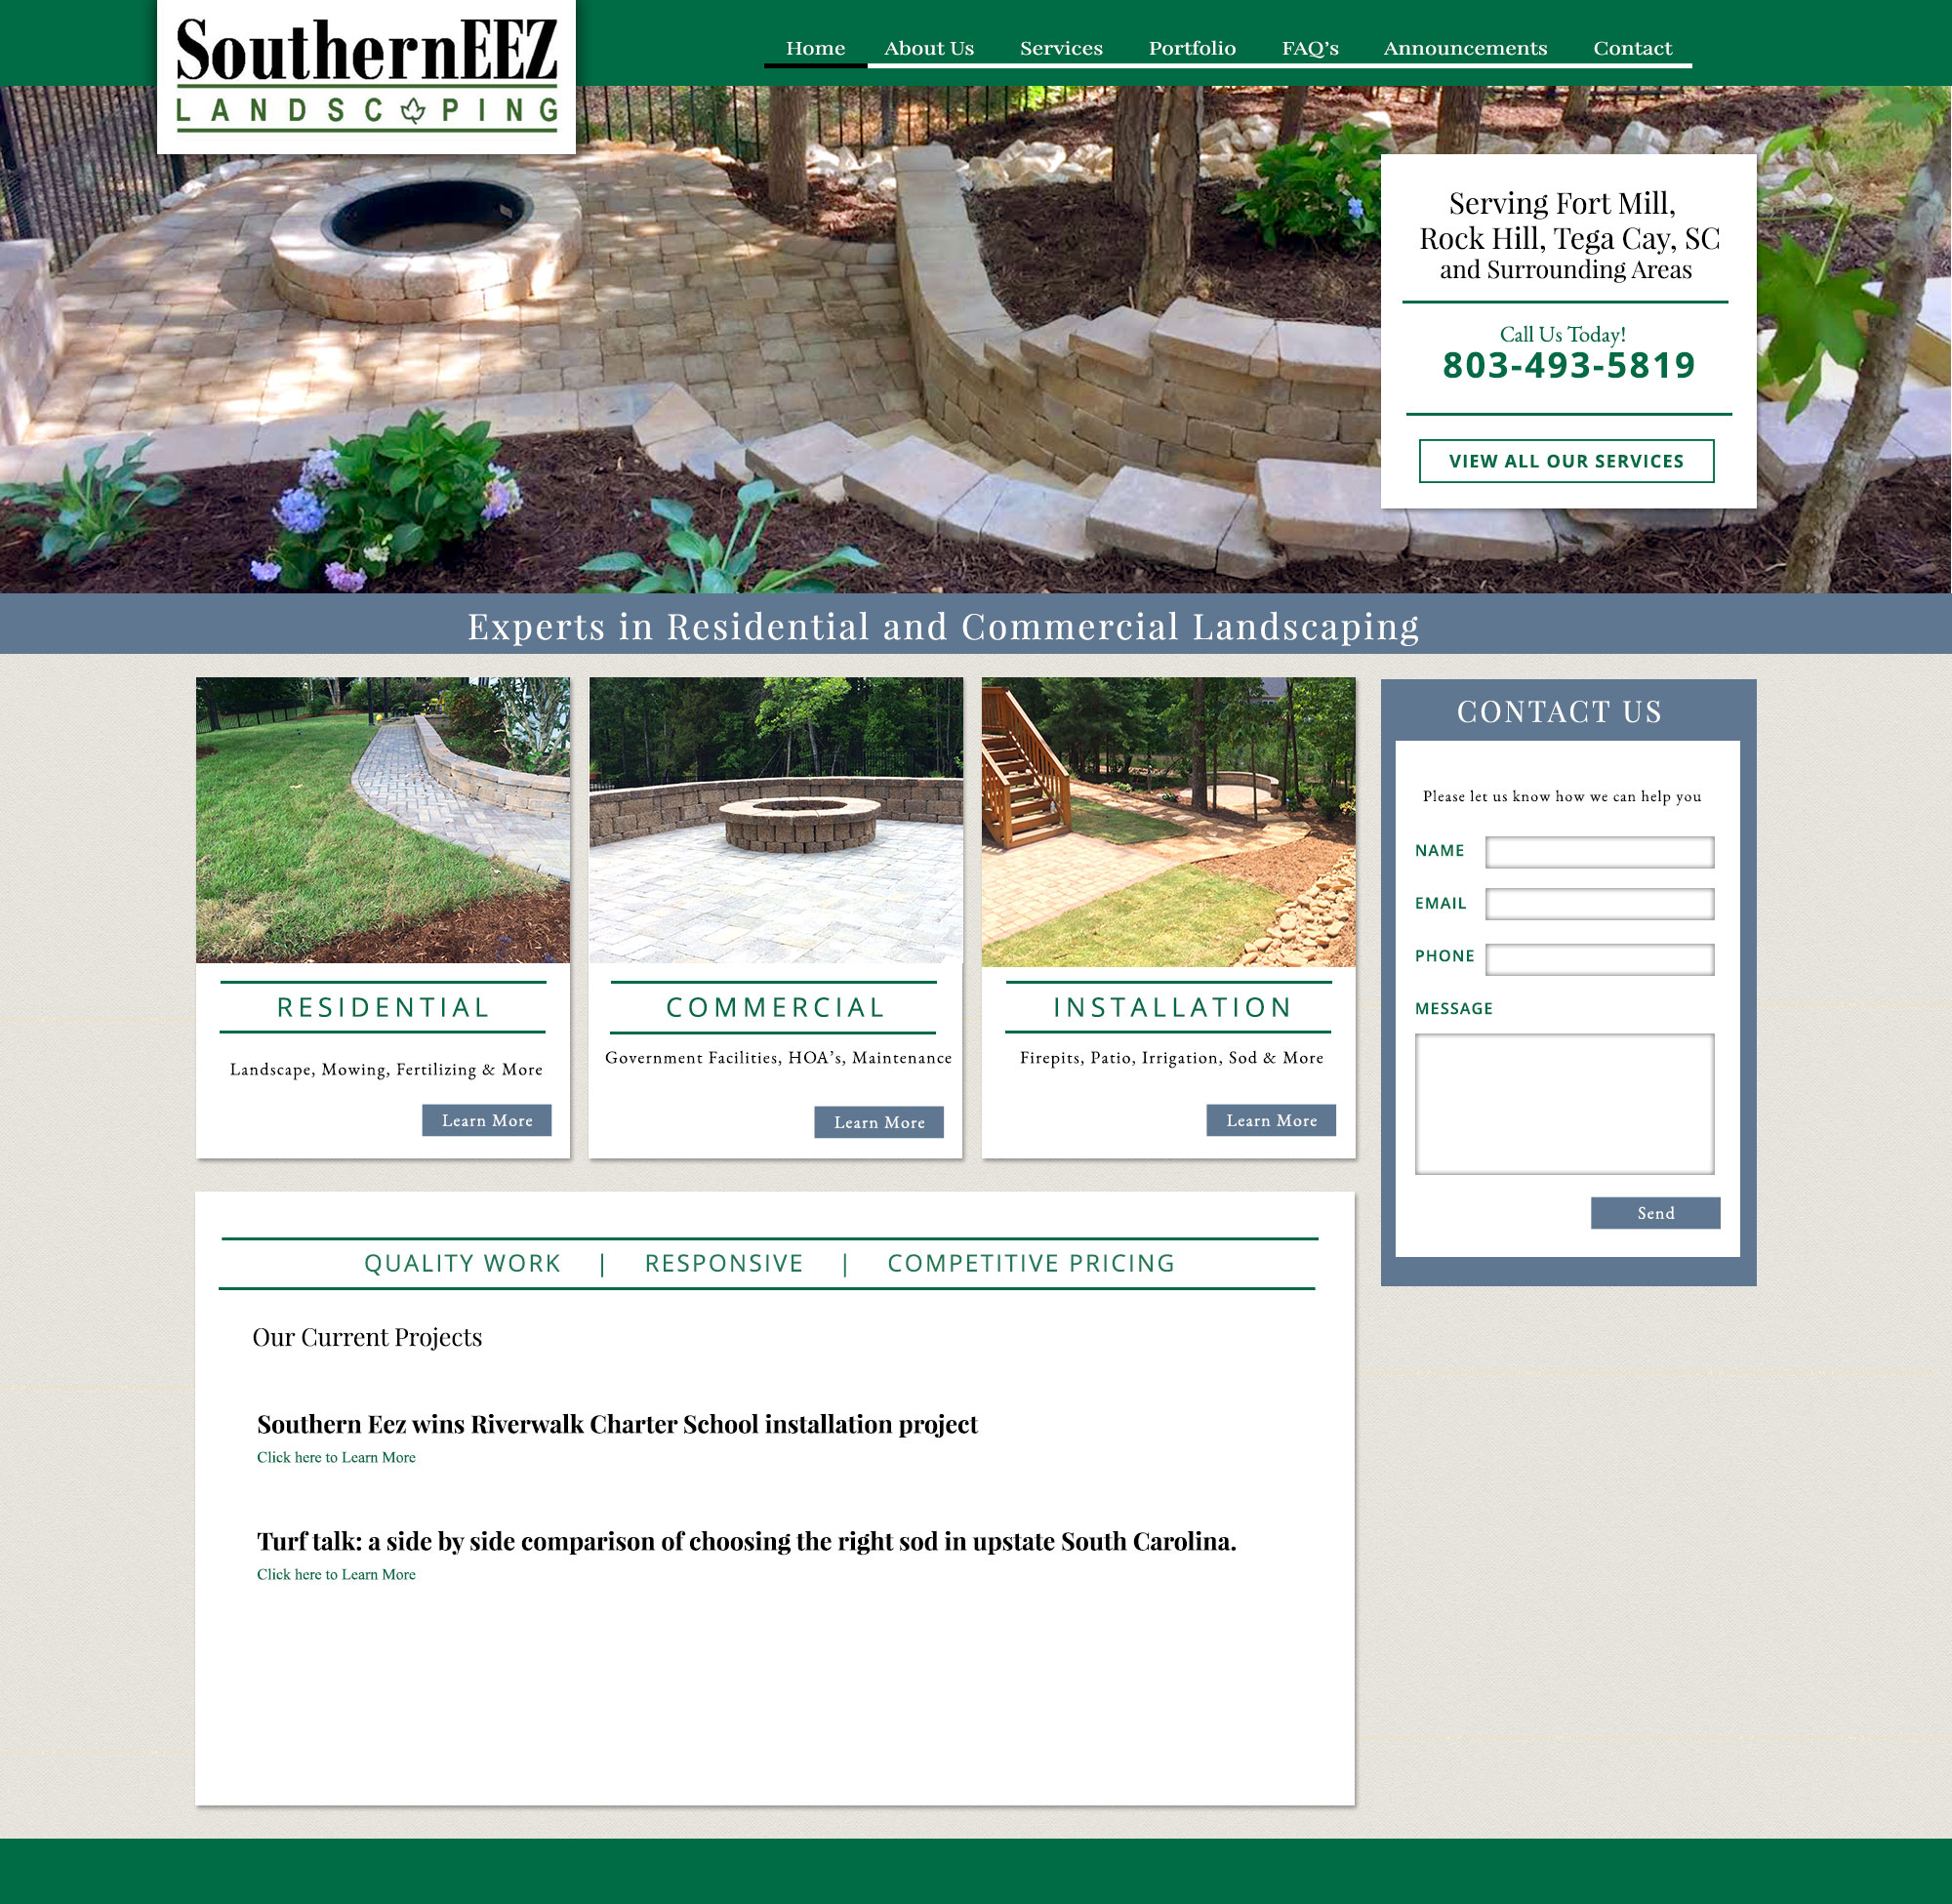 Southern Eez Landscaping